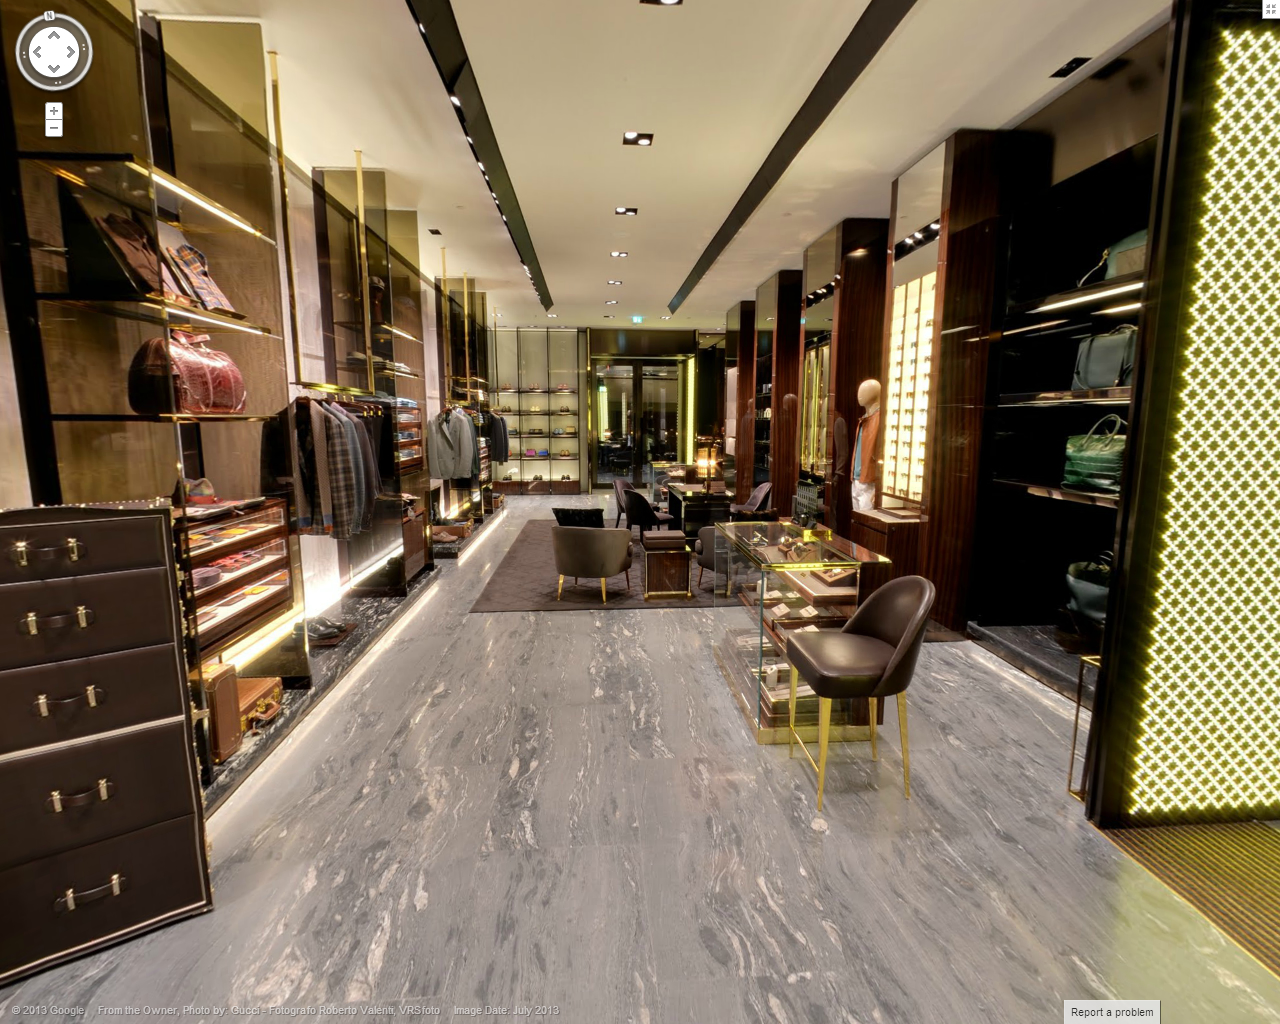 Gucci collaborates with Google for the first ever virtual store on disney home interior design, gucci bedroom, tudor home interior design, gucci carpet,